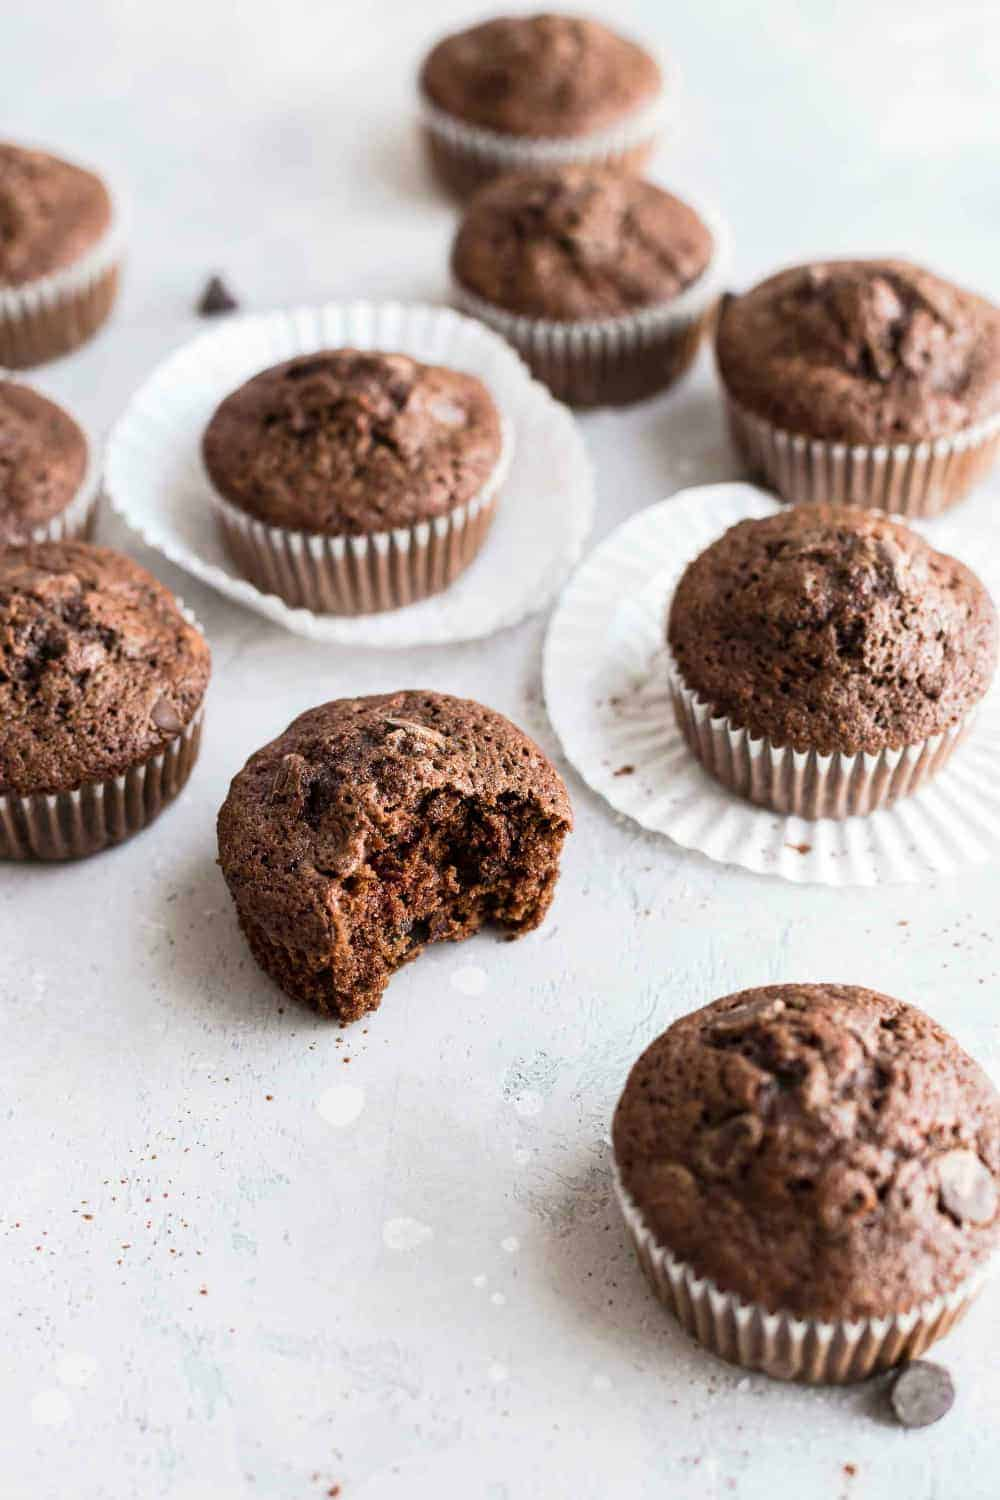 Half-eaten chocolate zucchini muffin surrounded by other chocolate muffins